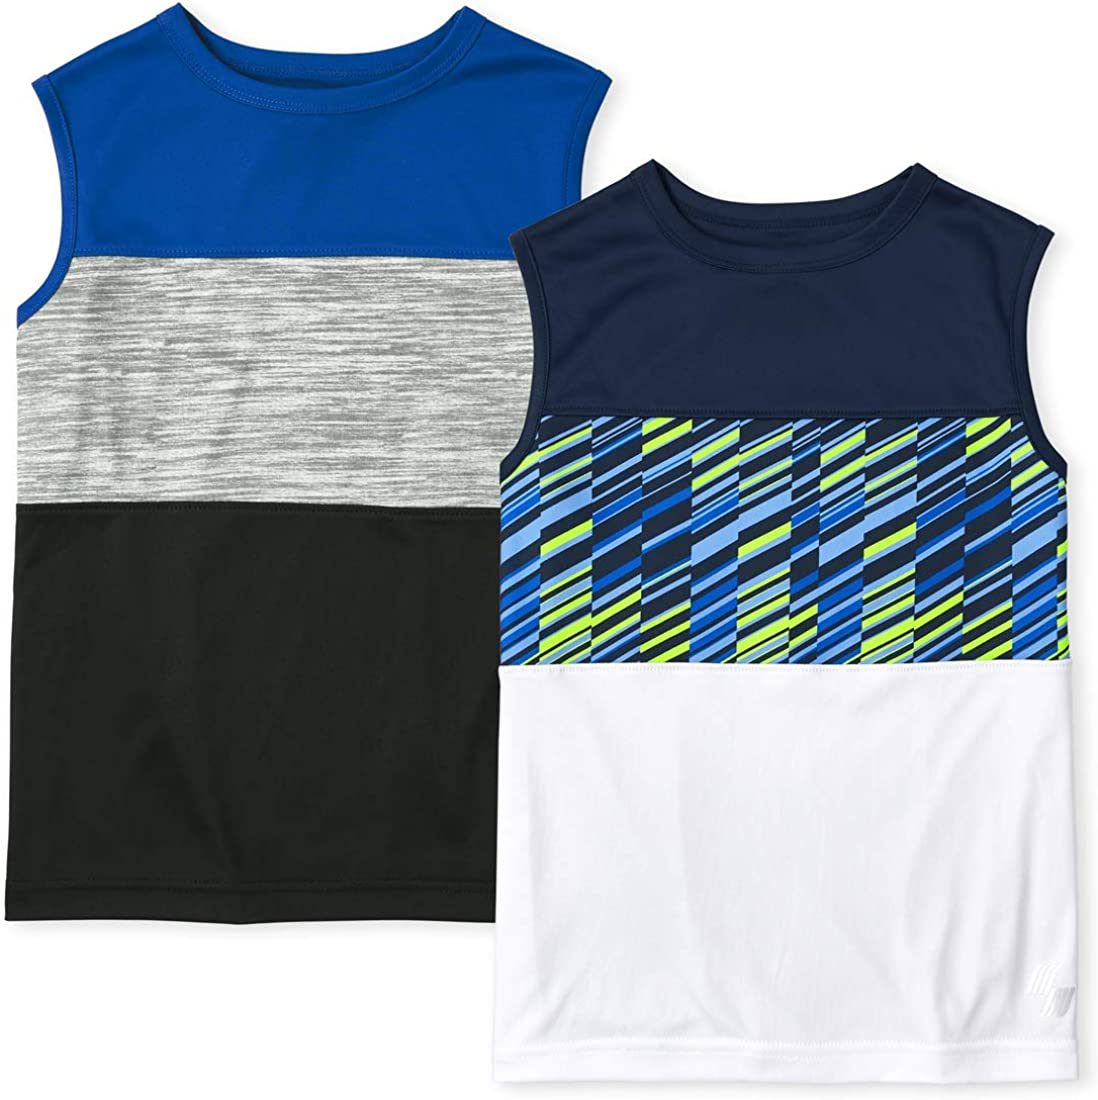 The Children's Place Boys Colorblock Performance Muscle Tank Top 2-Pack